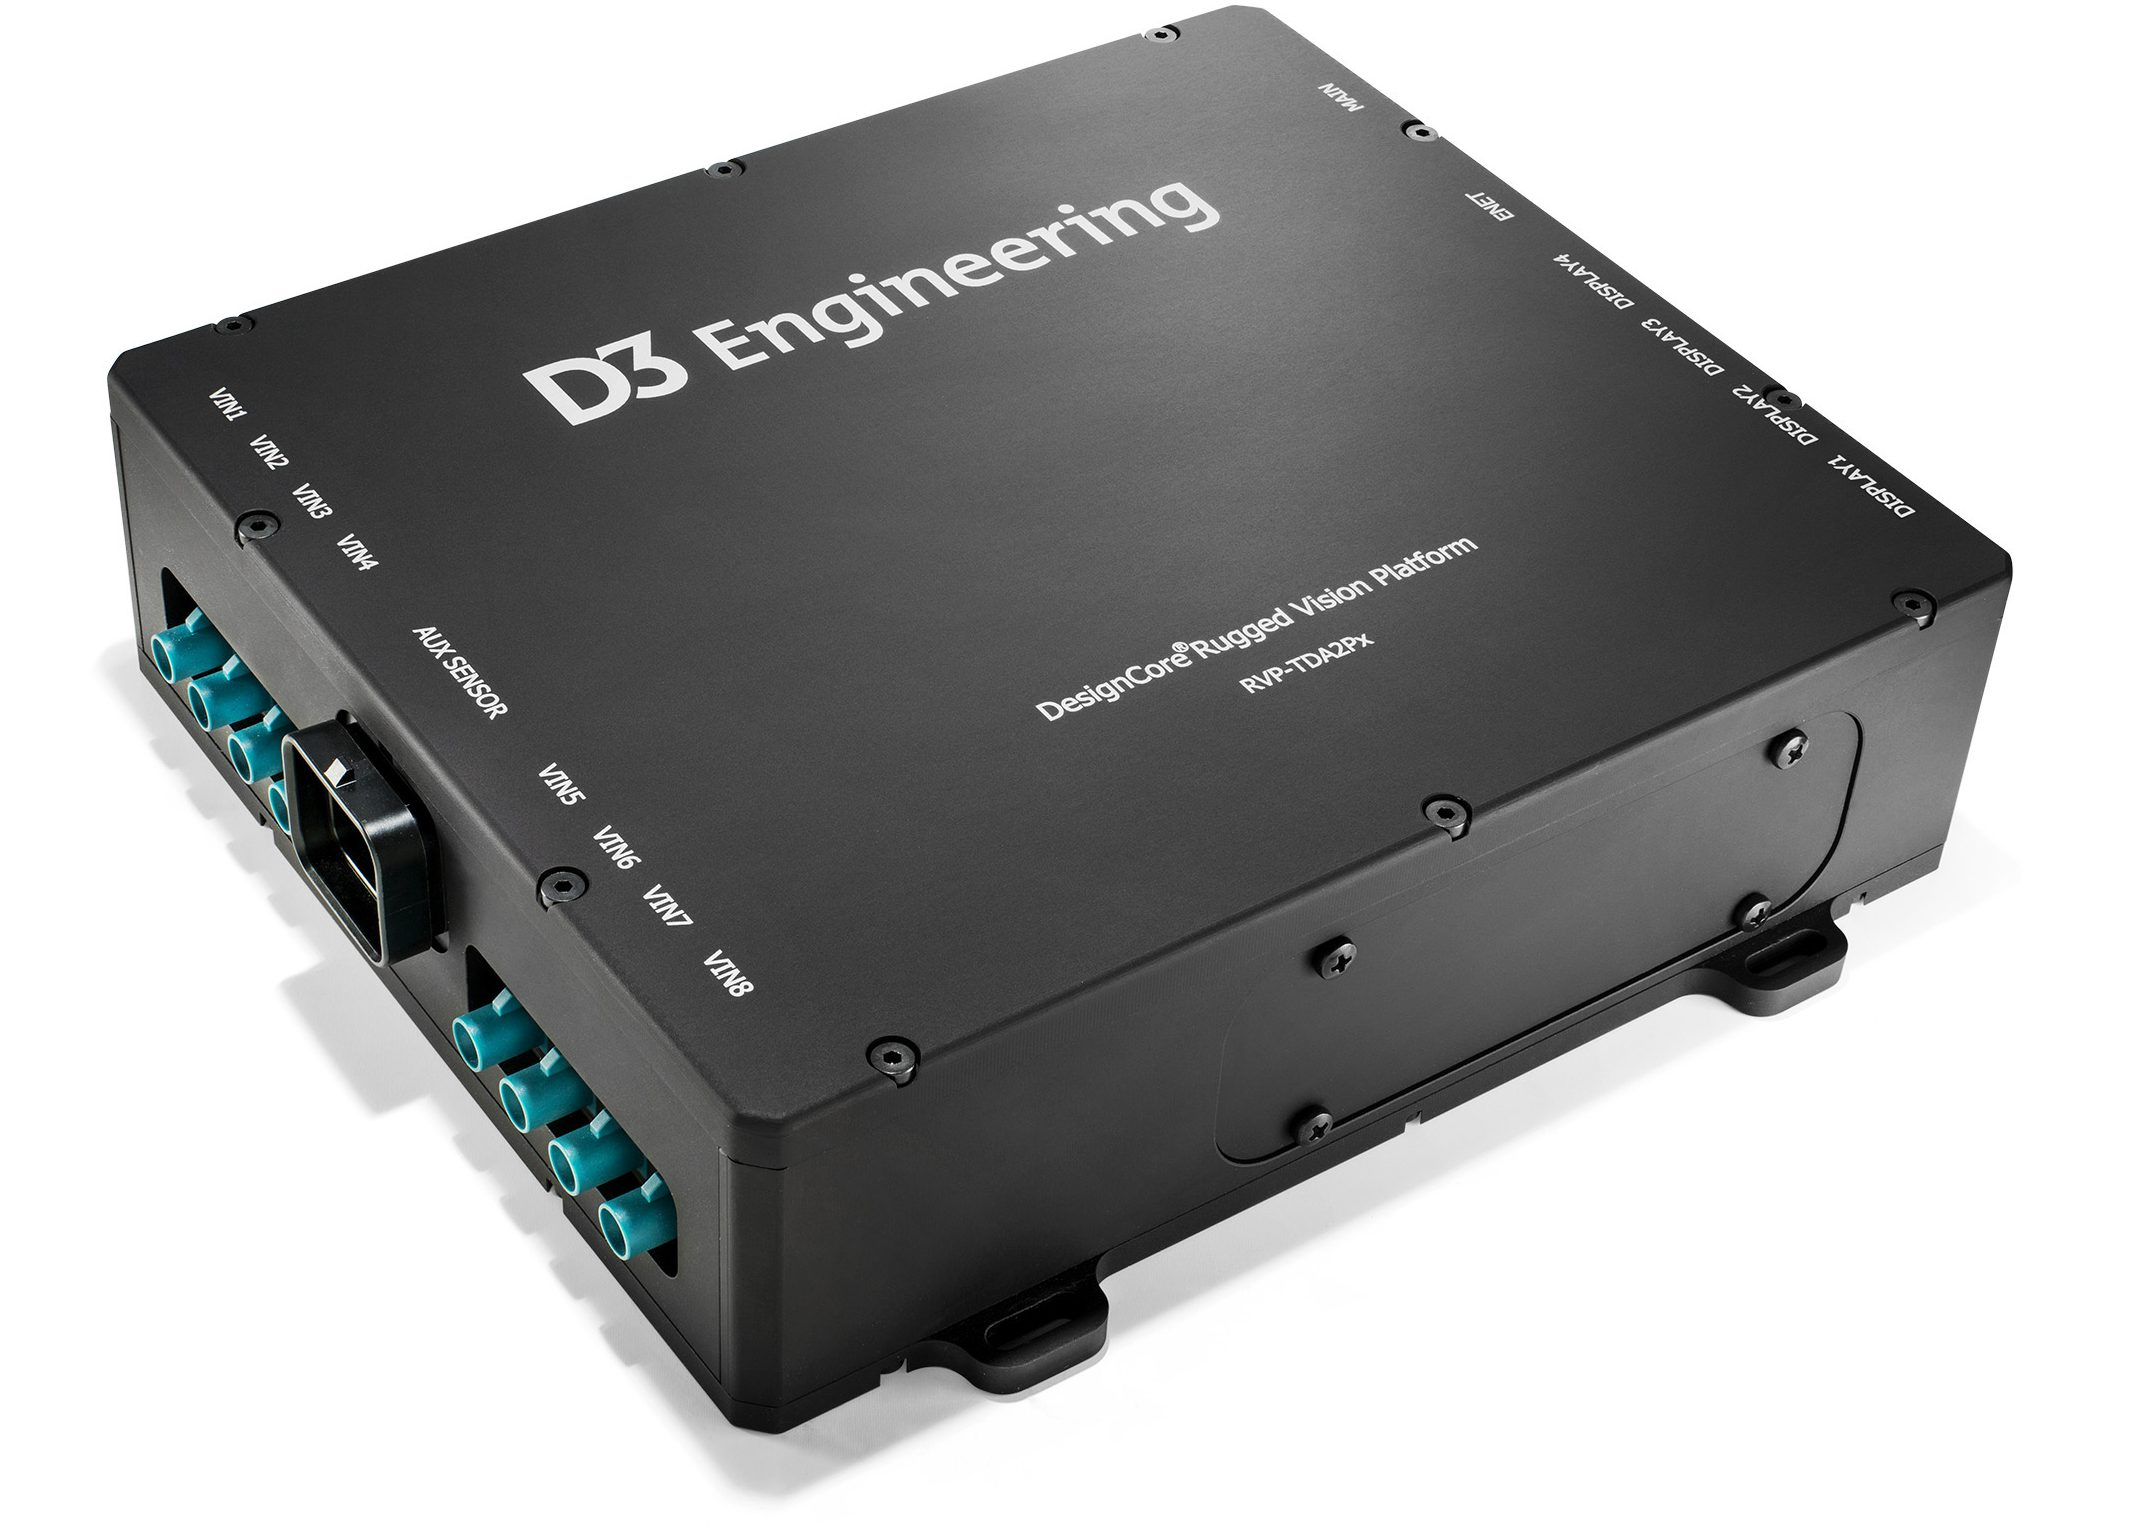 D3 Rugged Vision Platform with Texas Instruments TDA2Px processor